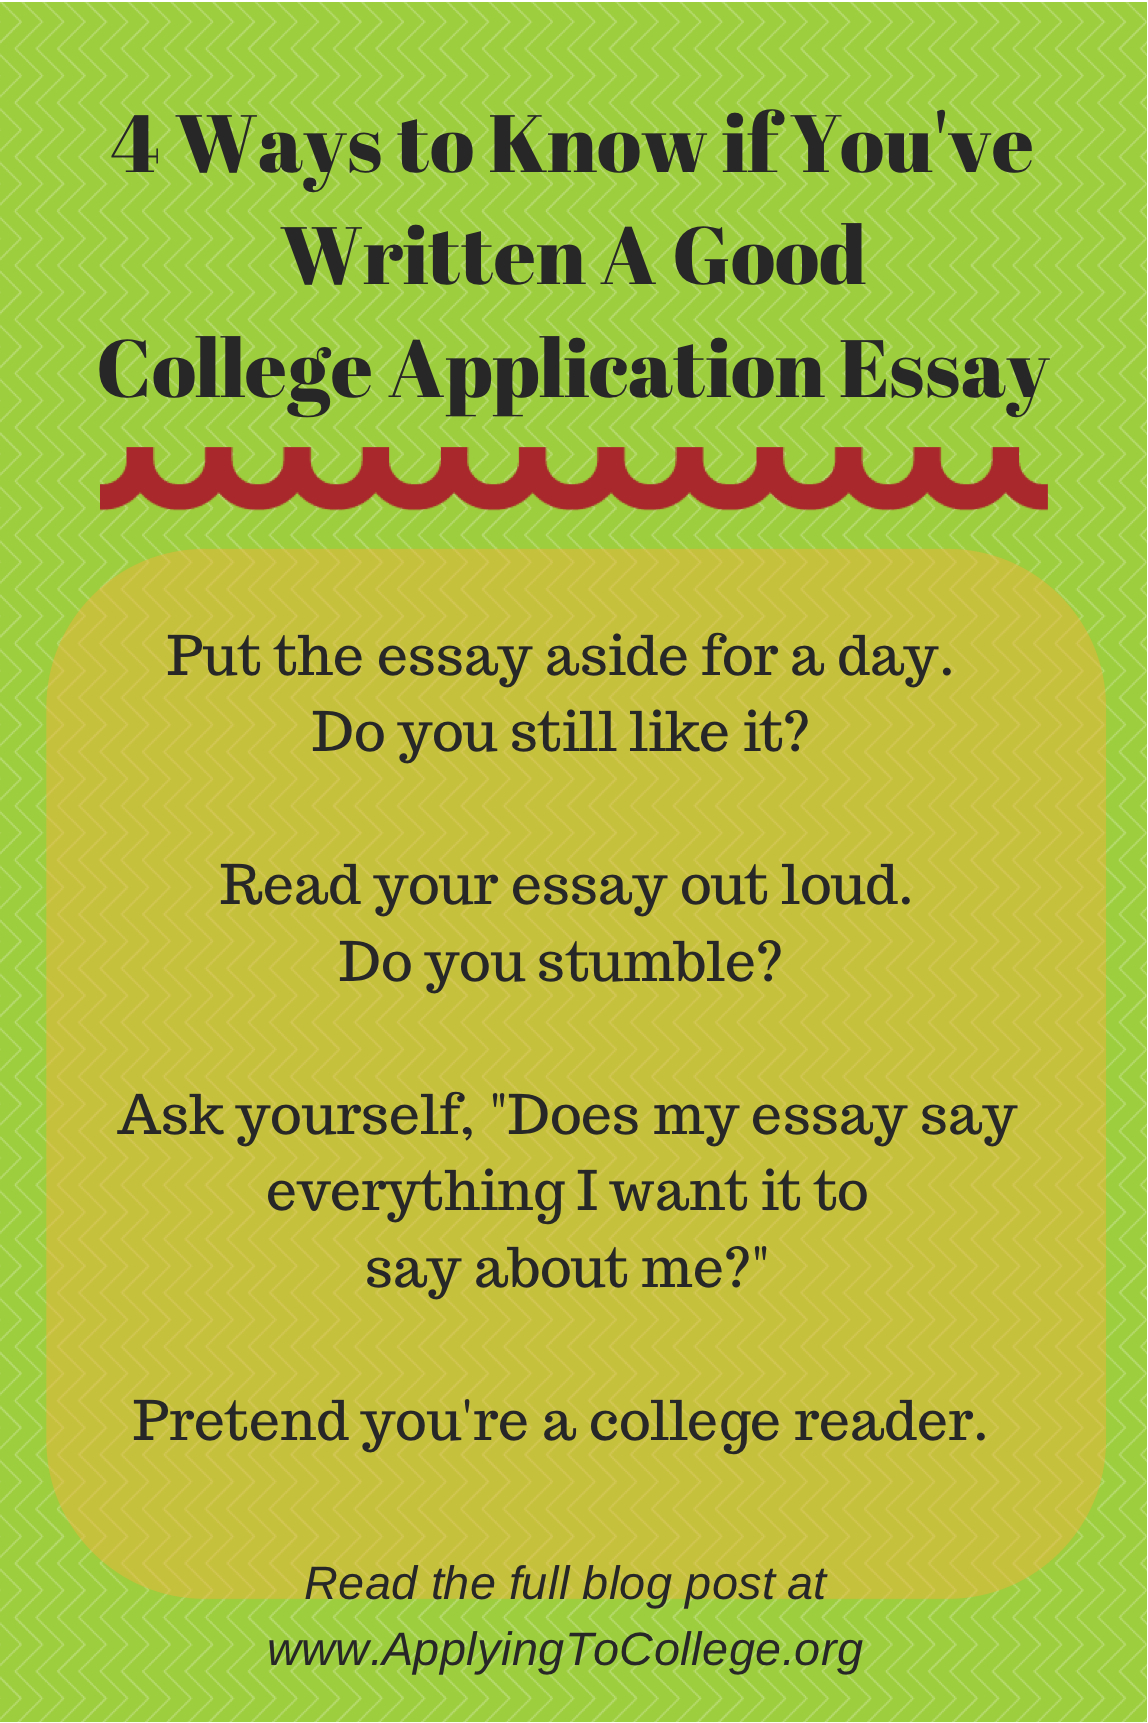 What do you think of this college application essay?